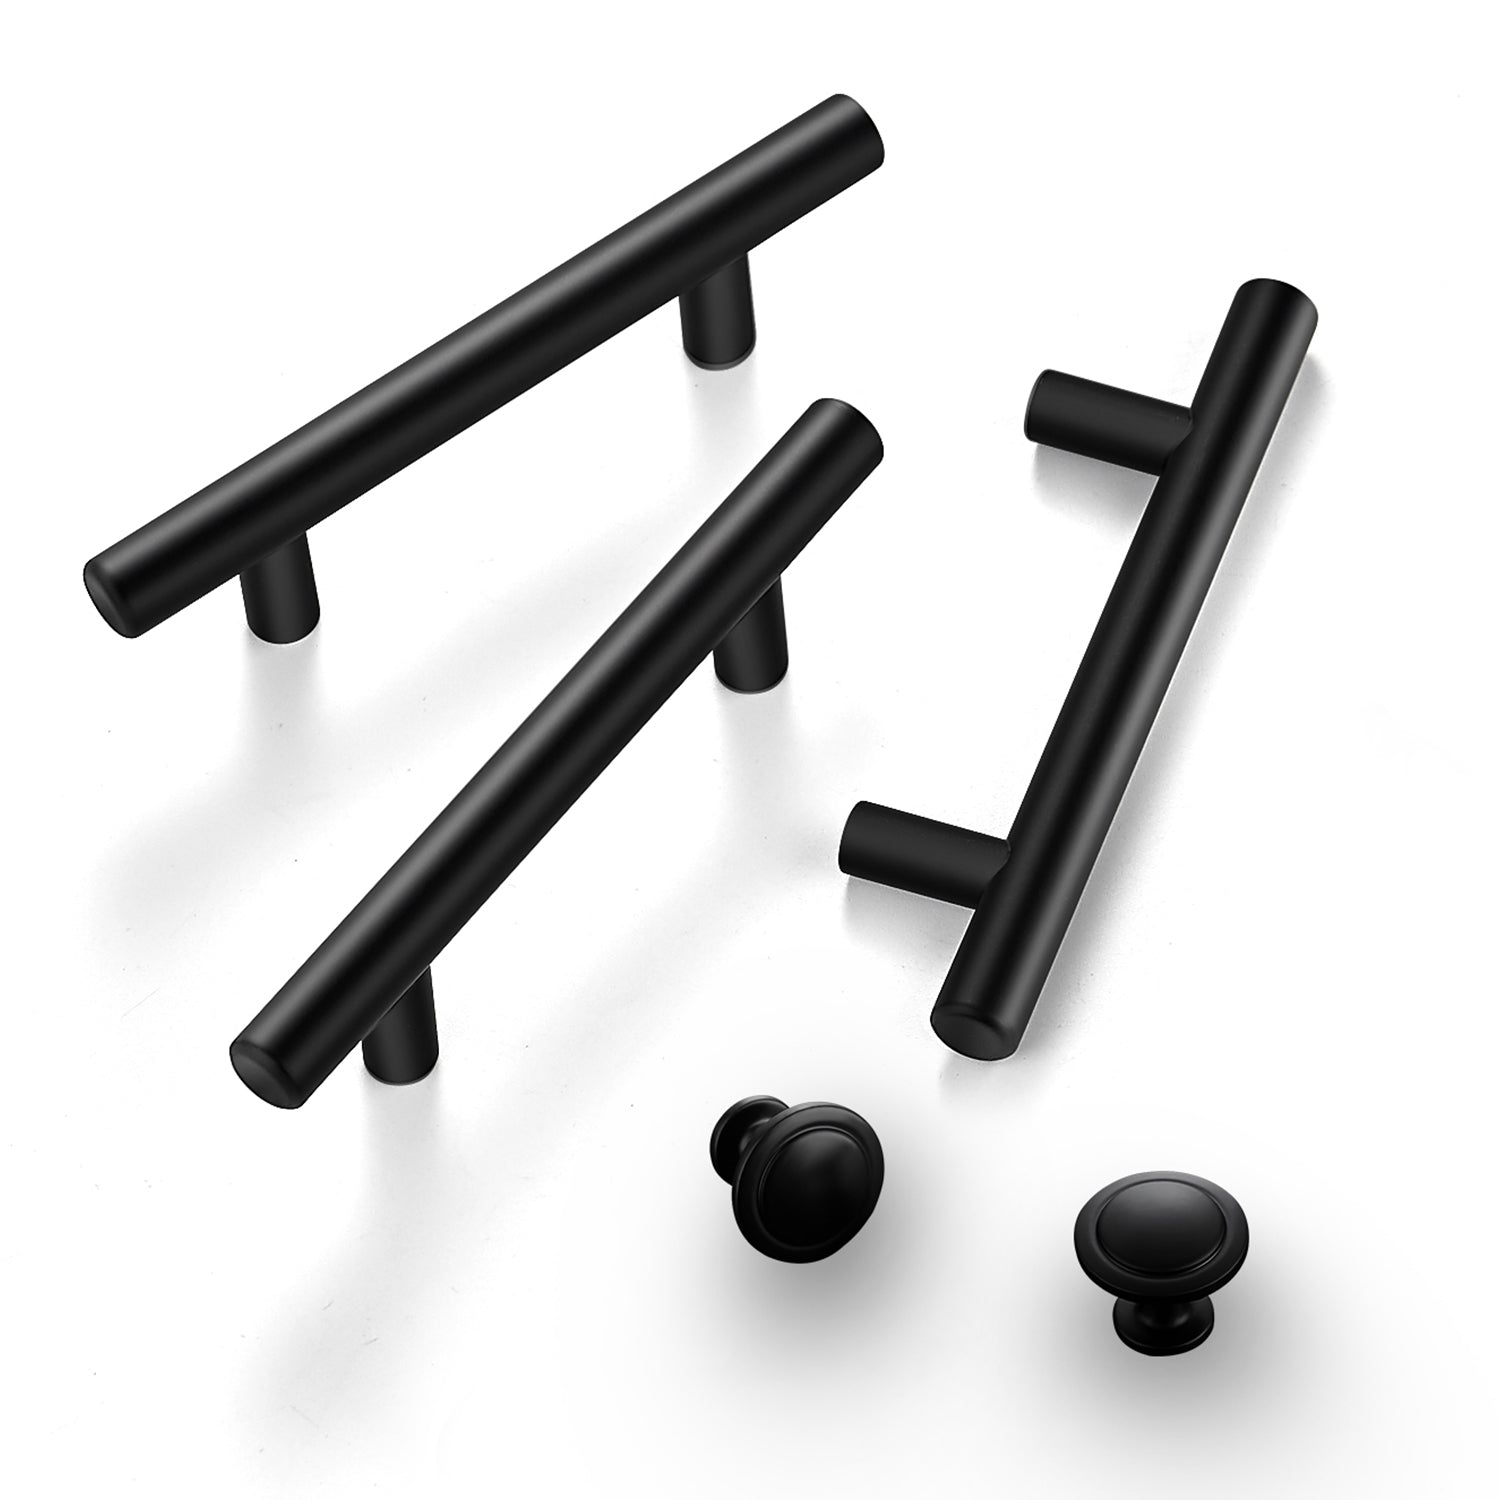 Ravinte 30 Pcs Handles+10Pcs Round Knobs Kitchen Cabinet Handles Matte Black Cabinet Pulls Black Drawer Pulls Kitchen Cabinet Hardware Kitchen Handles for Cabinets Cupboard Handles Drawer Handles